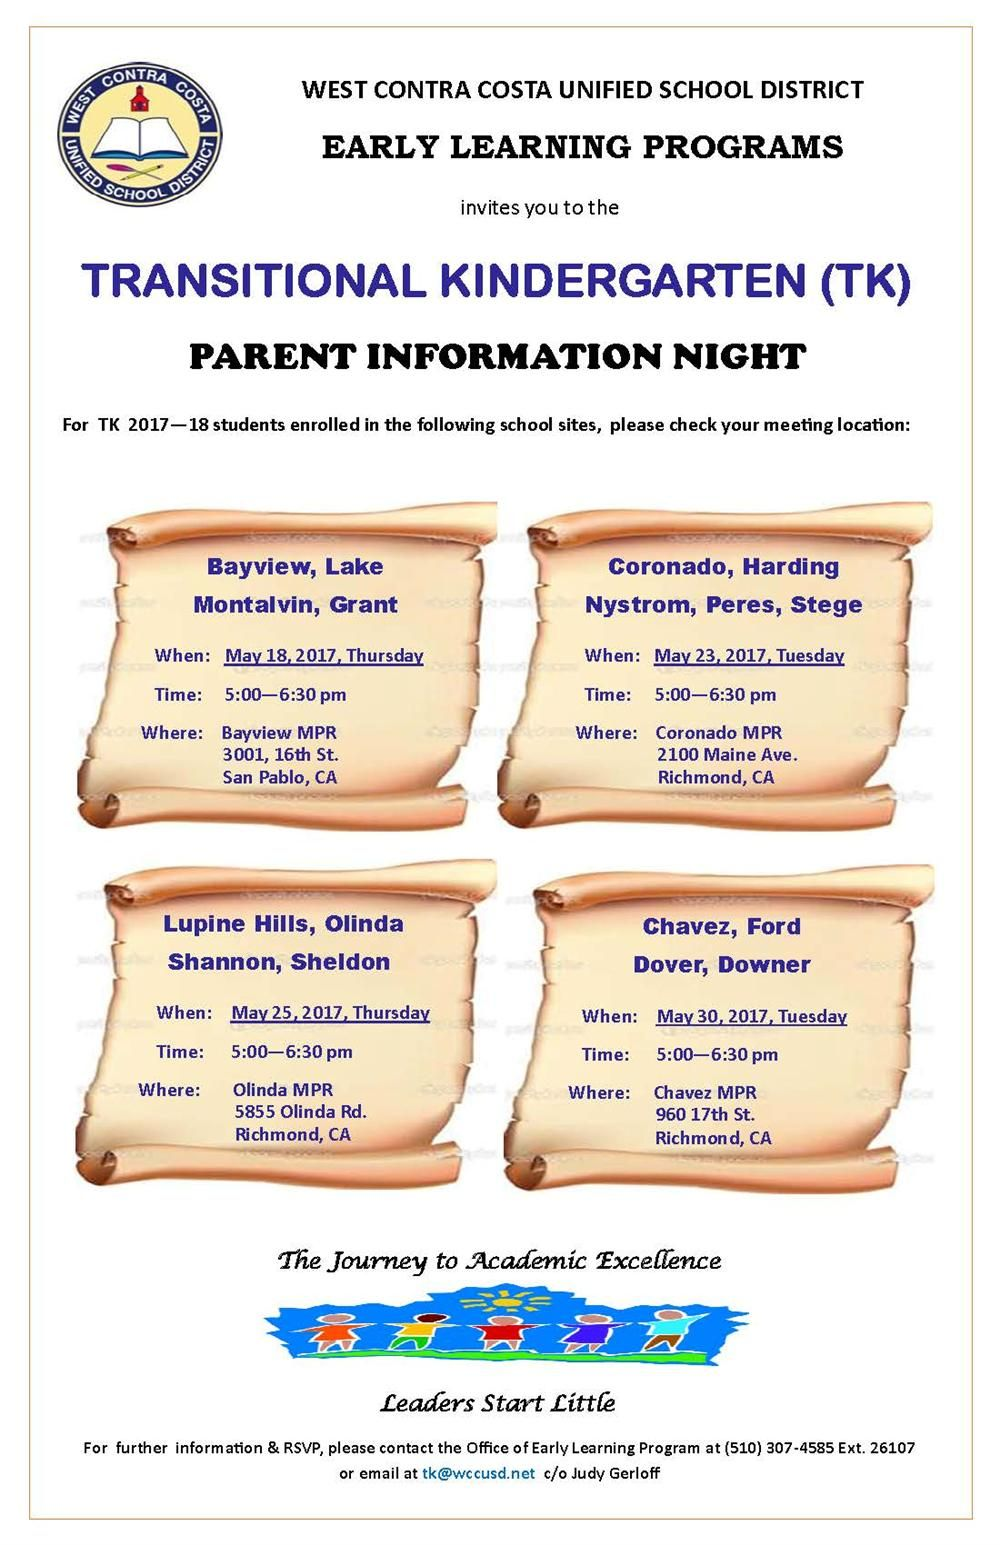 Transitional Kindergarten (TK) Parent Information Night